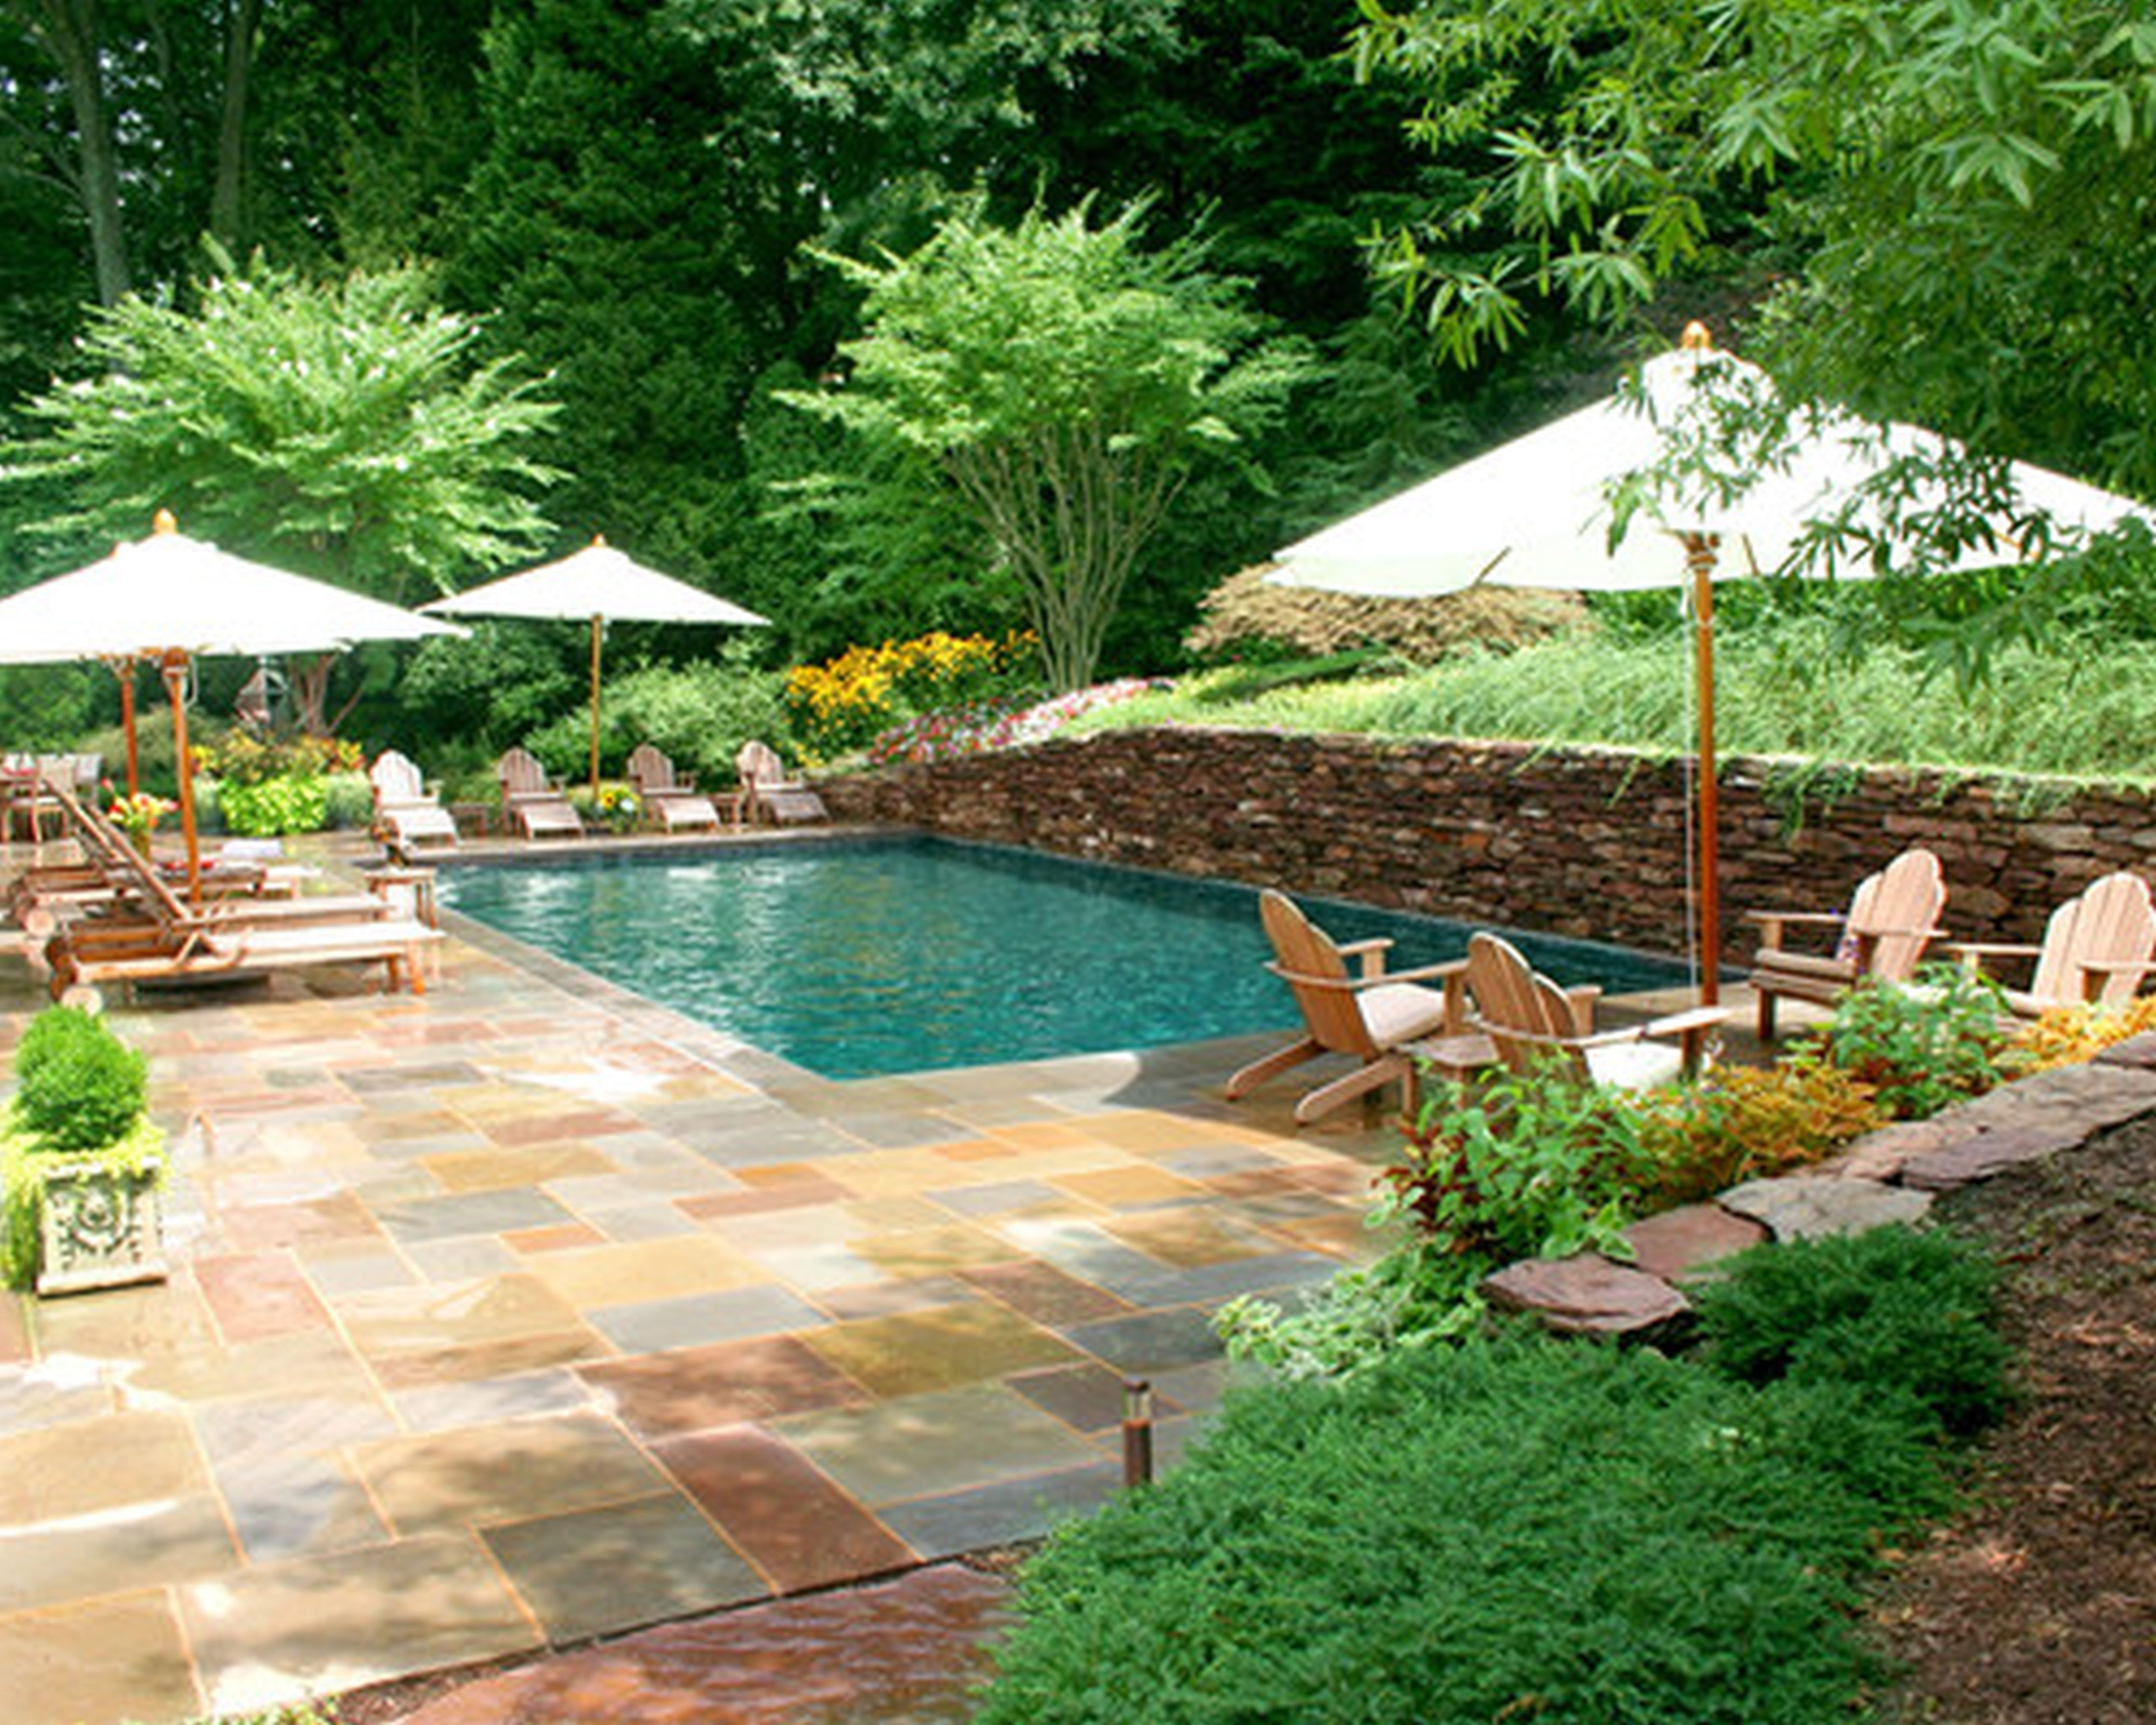 Small backyard pool ideas backyard remodel ideas for Pool ideas for small backyard